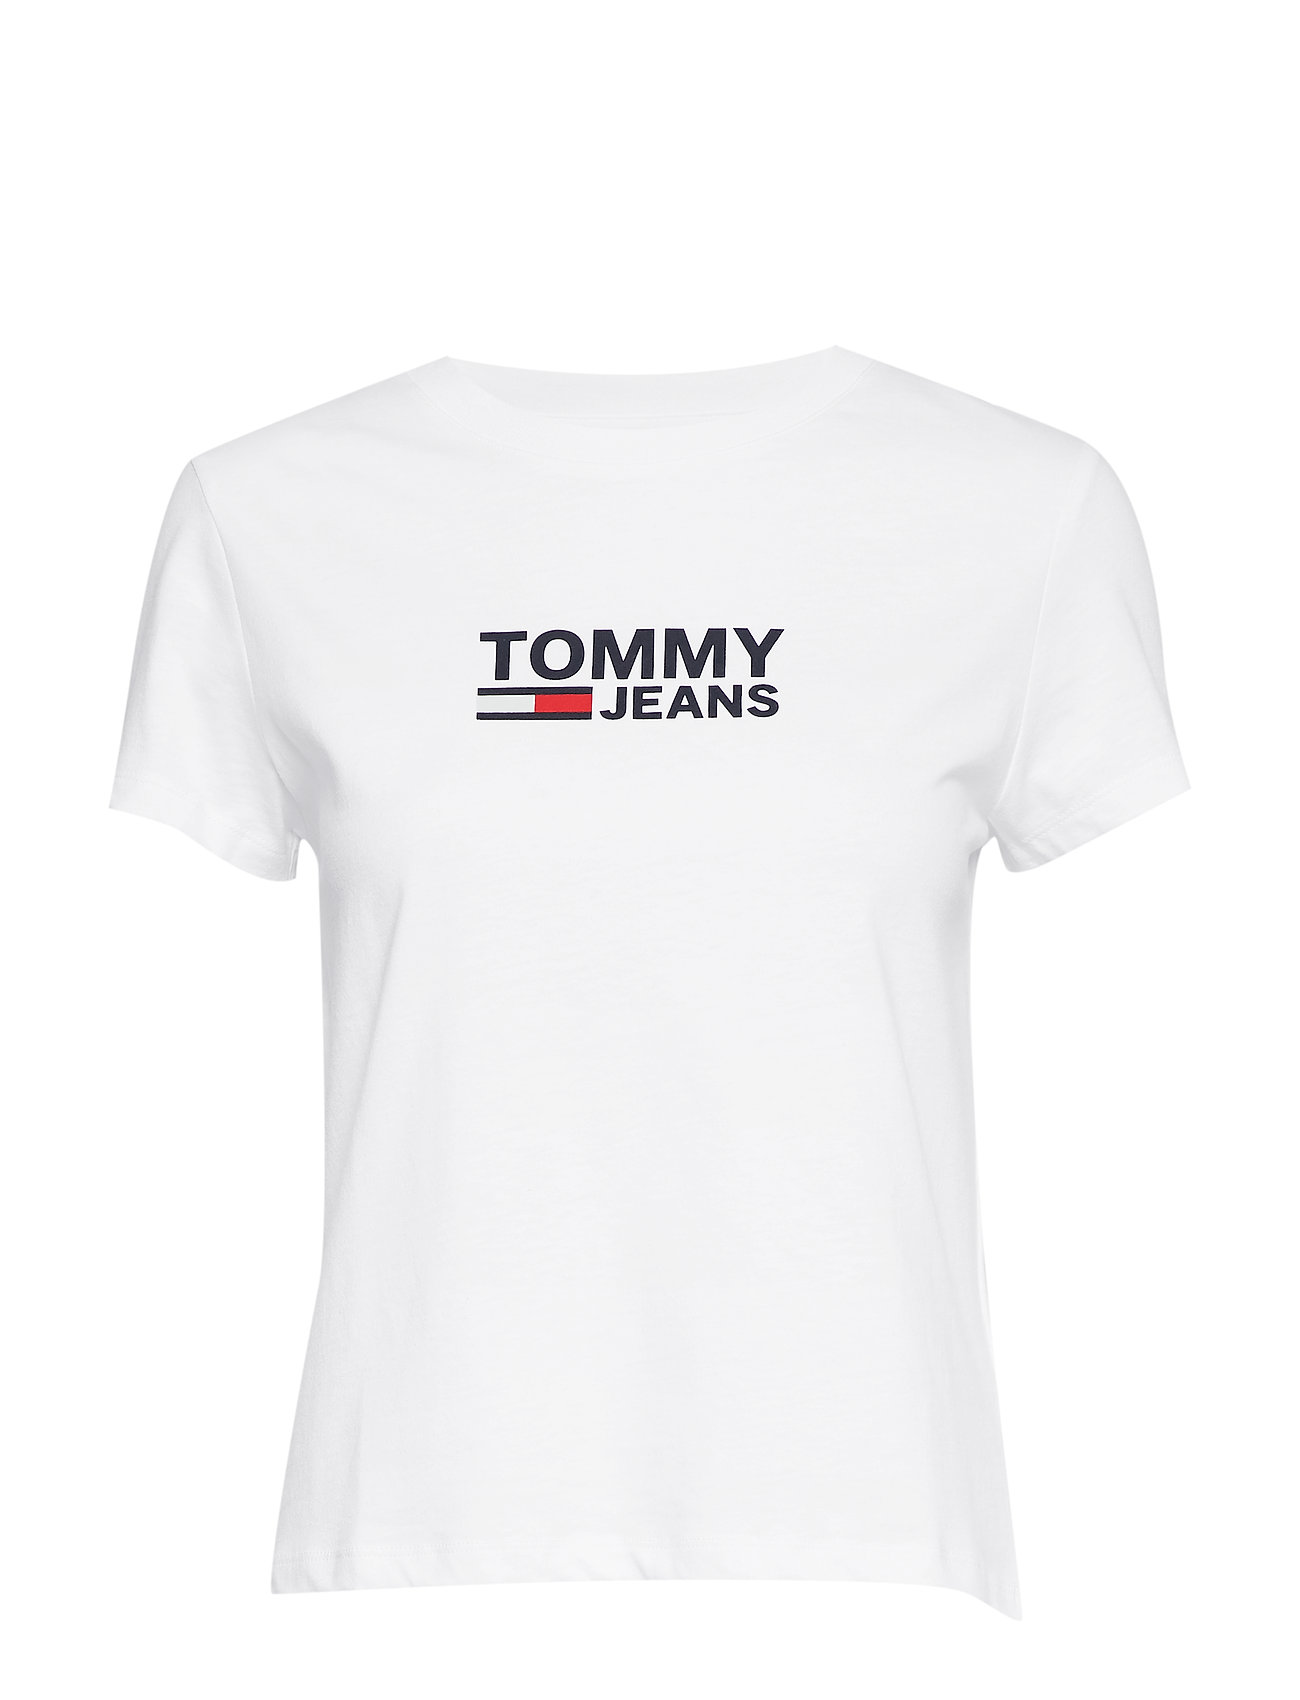 Tommy Jeans TJW CORP LOGO TEE - CLASSIC WHITE